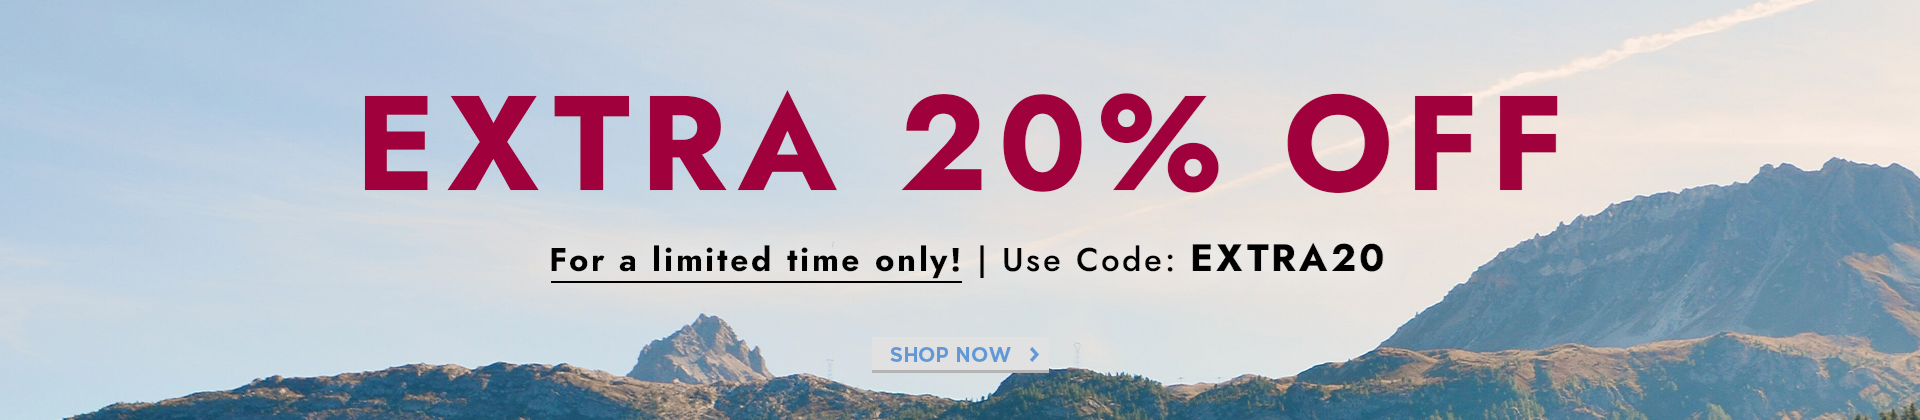 H1: EXTRA 20% USE CODE: EXTRA20